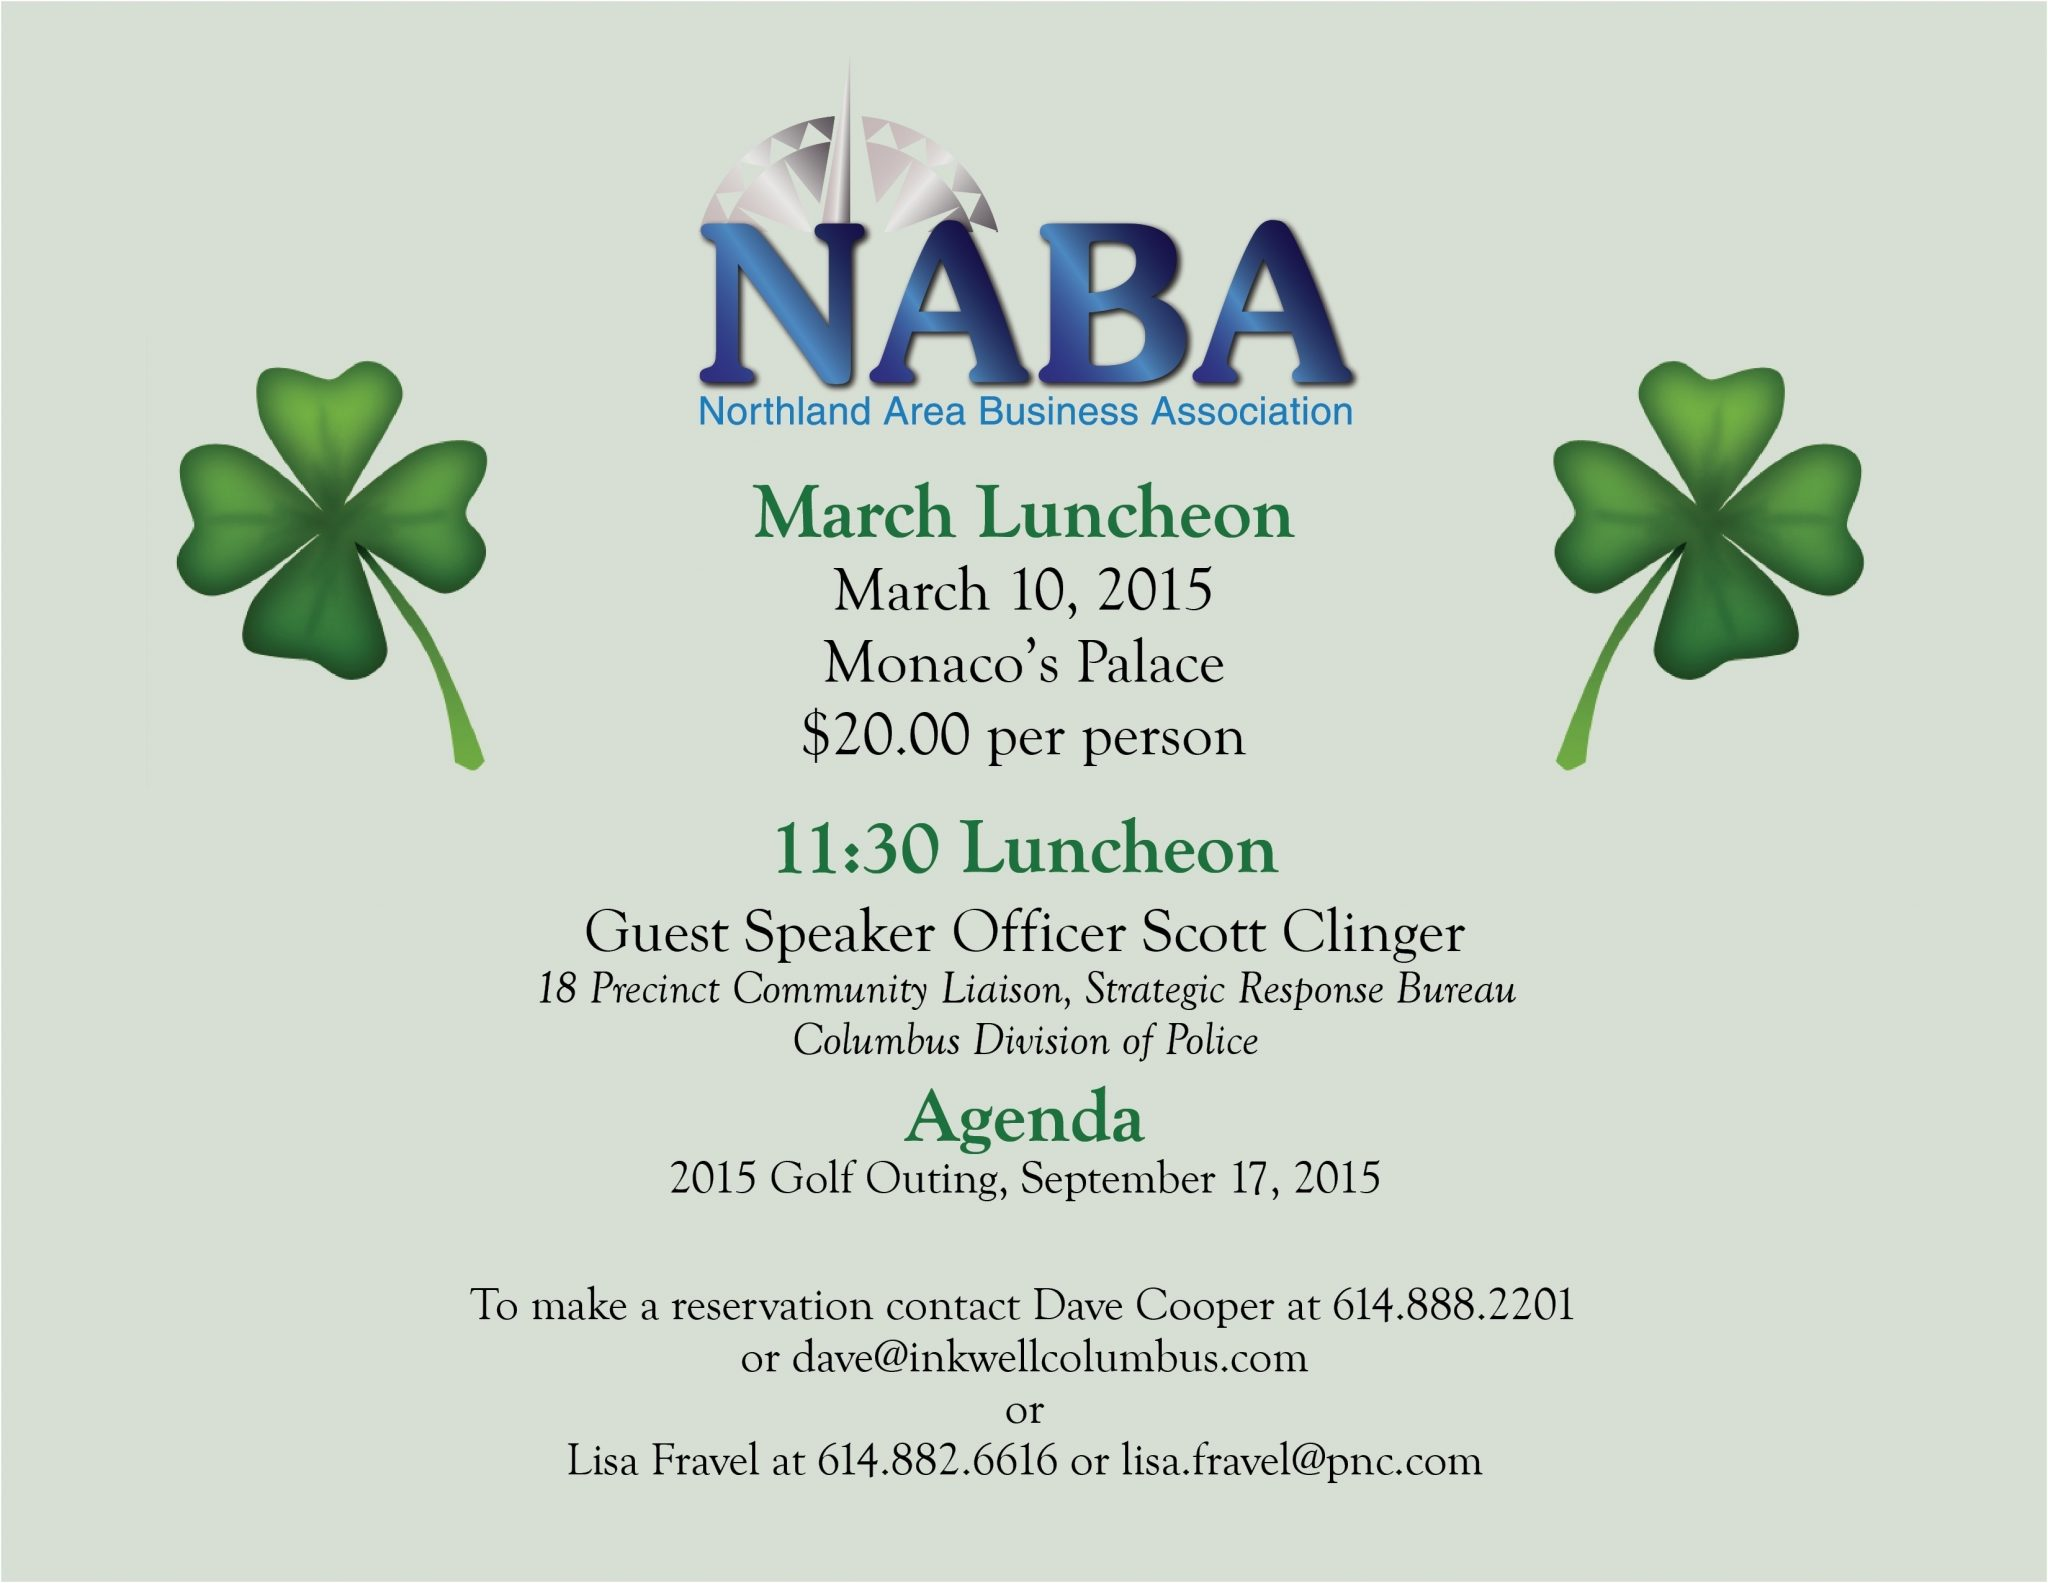 NABA March luncheon slide (2)